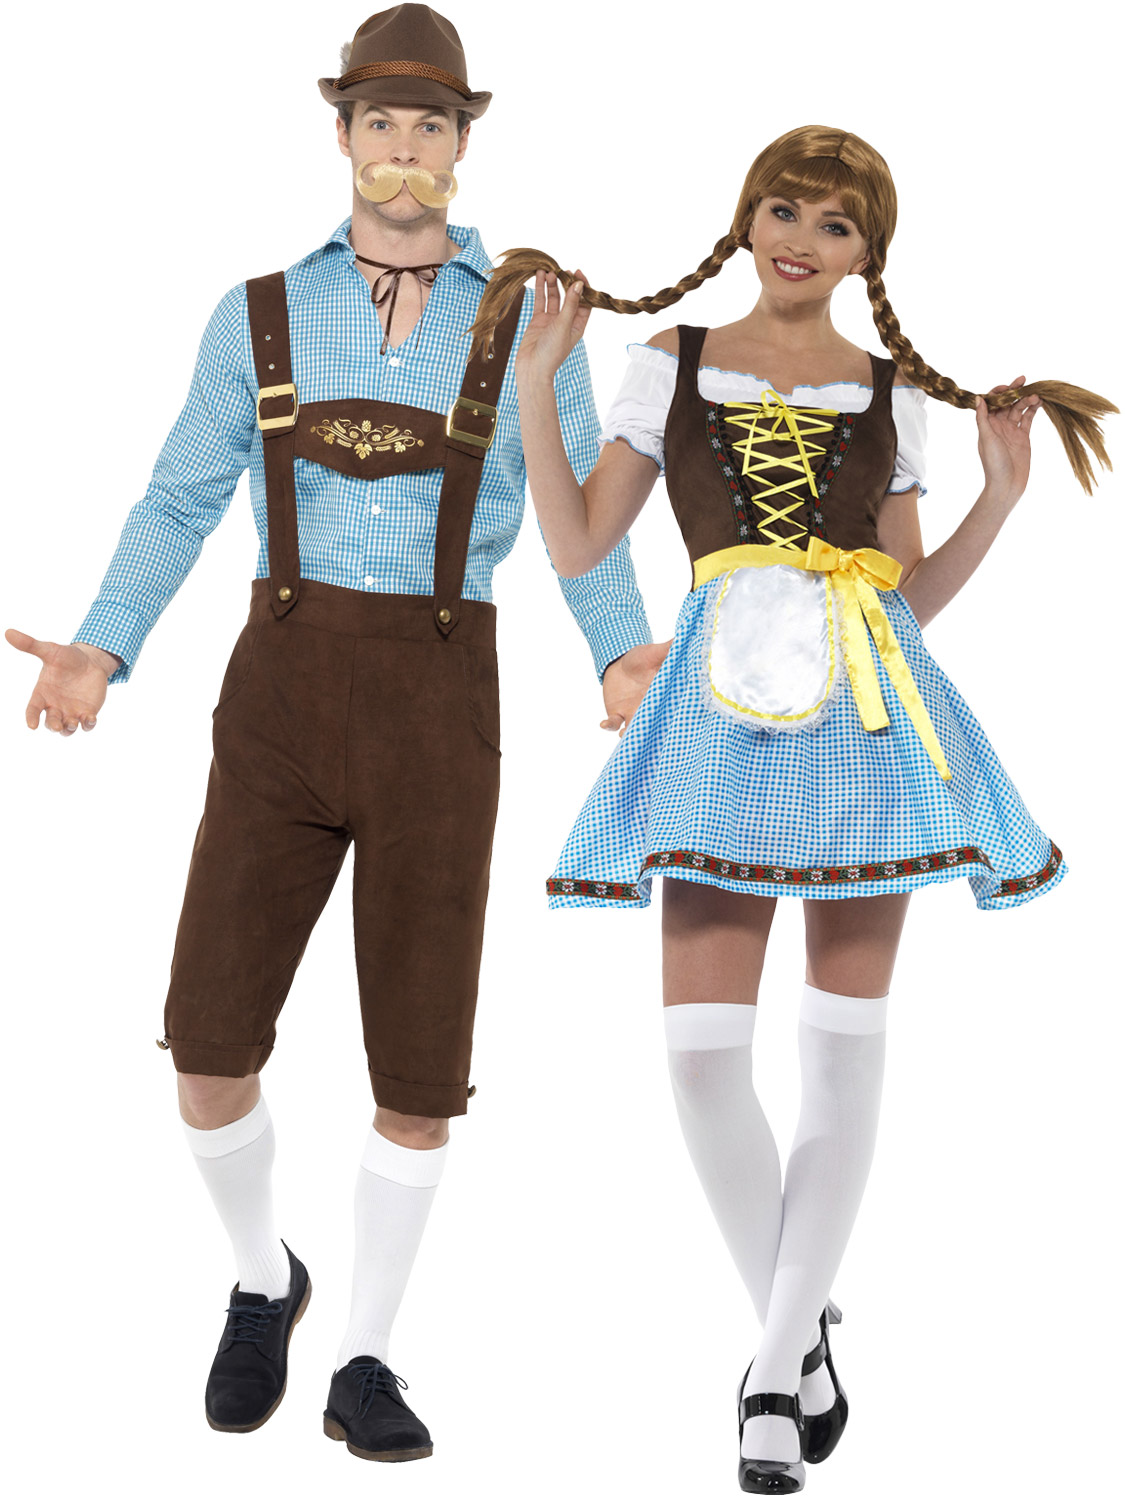 Mens ladies oktoberfest costume bavarian beer lederhosen couples are you going to an oktoberfest party transform yourself into a bavarian with either of these costumes they would look great if you were dressing up as a solutioingenieria Images